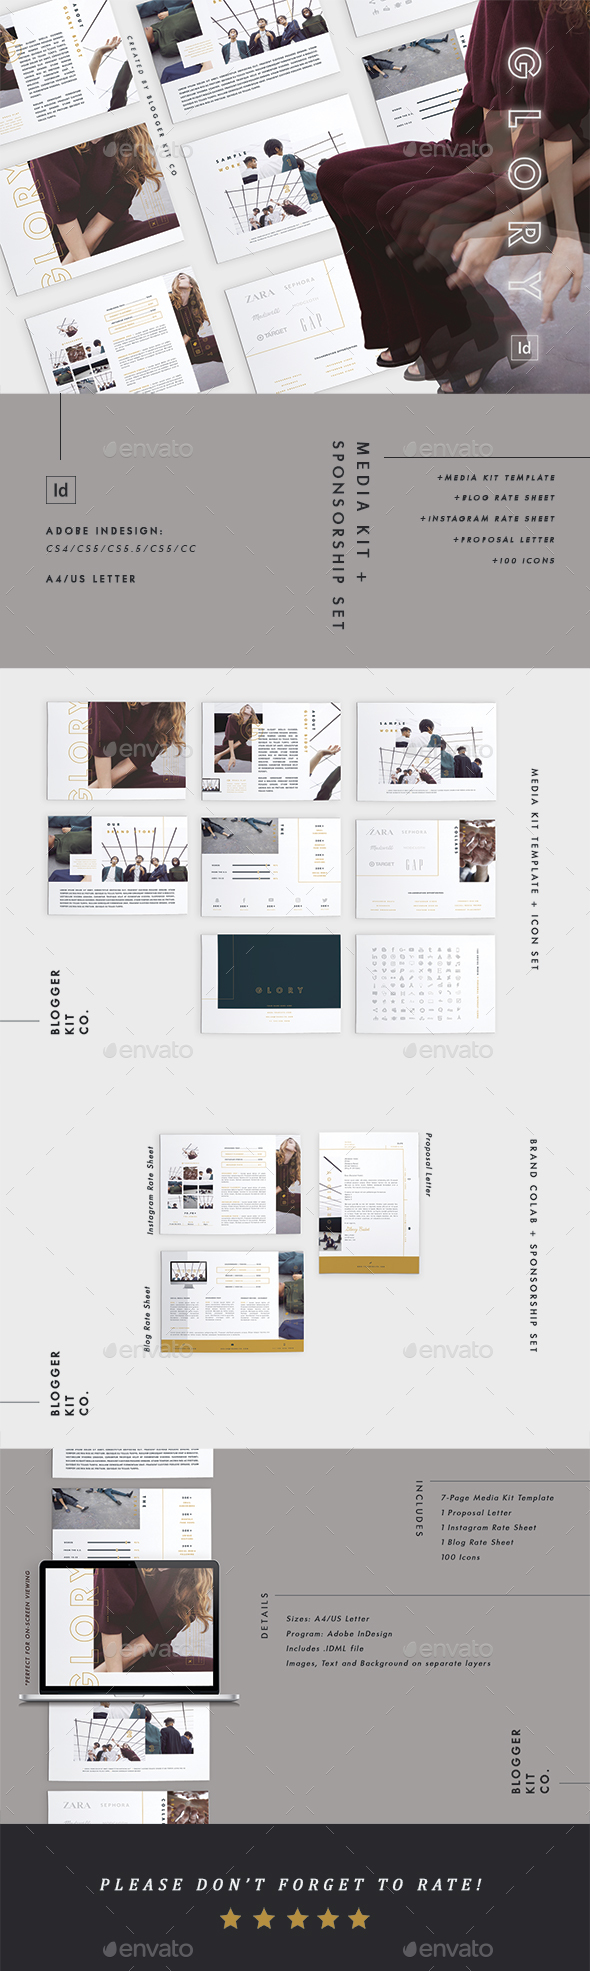 Media Kit Template + Sponsorship Set - Resumes Stationery